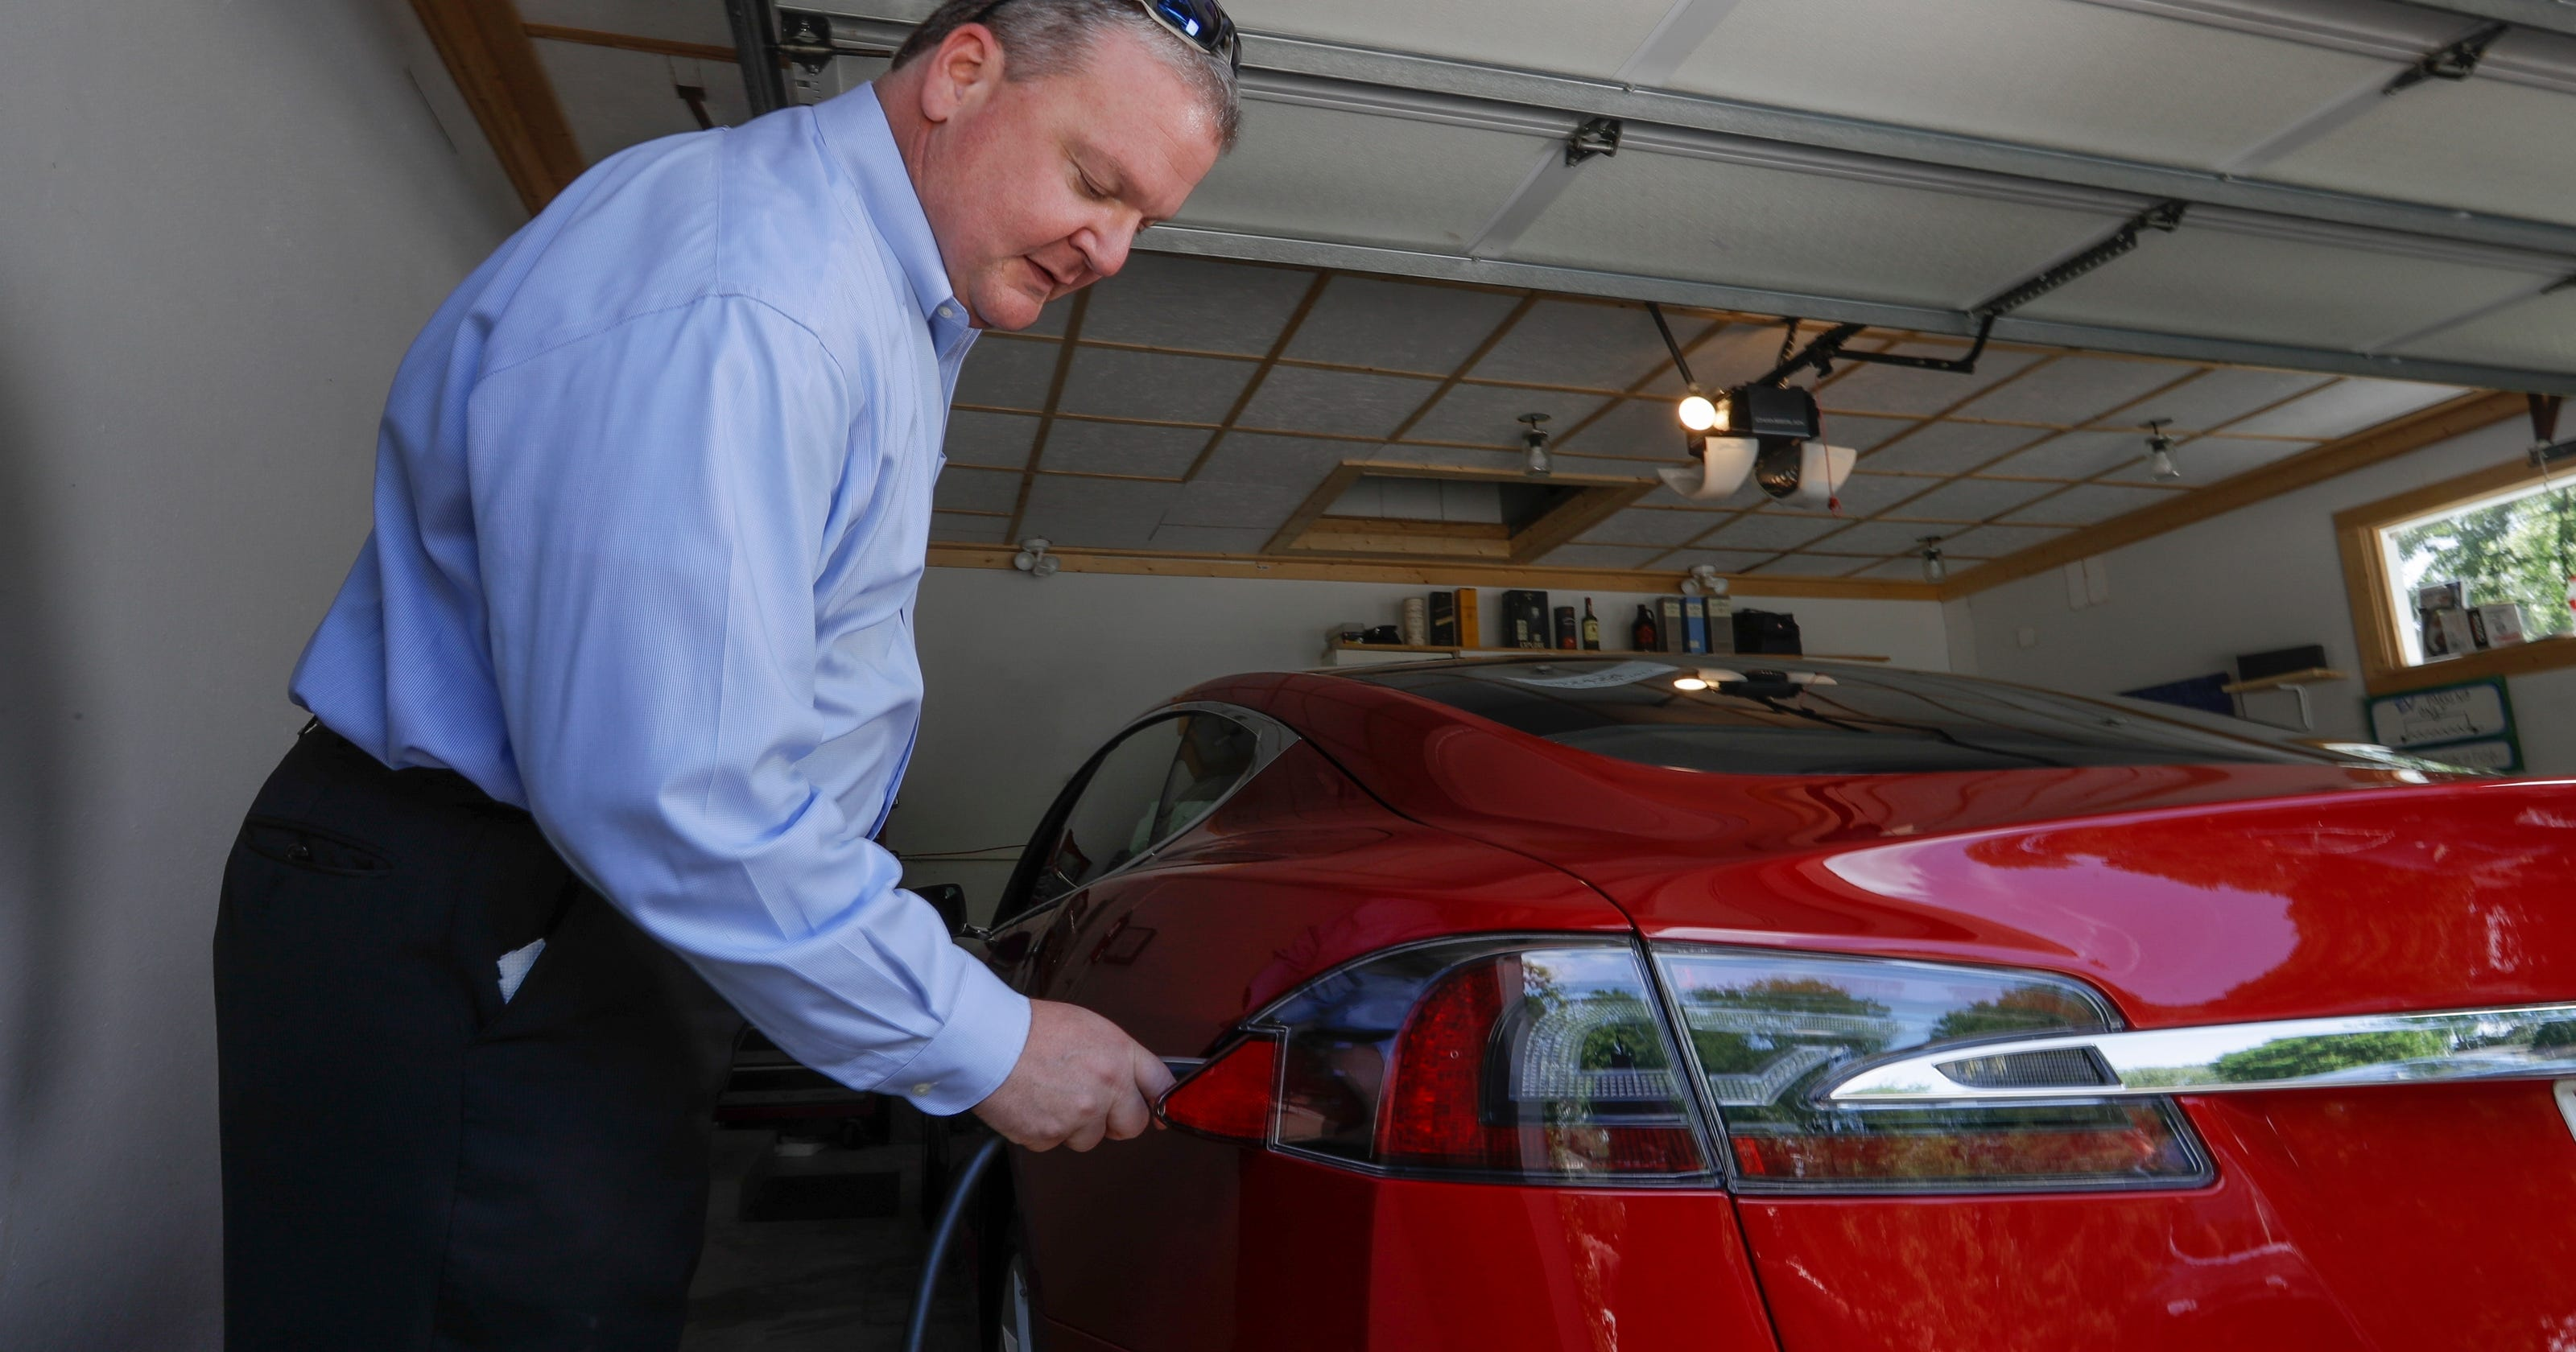 7 500 Electric Car Tax Credit Goes Away Under Gop Plan Not Good For Tesla